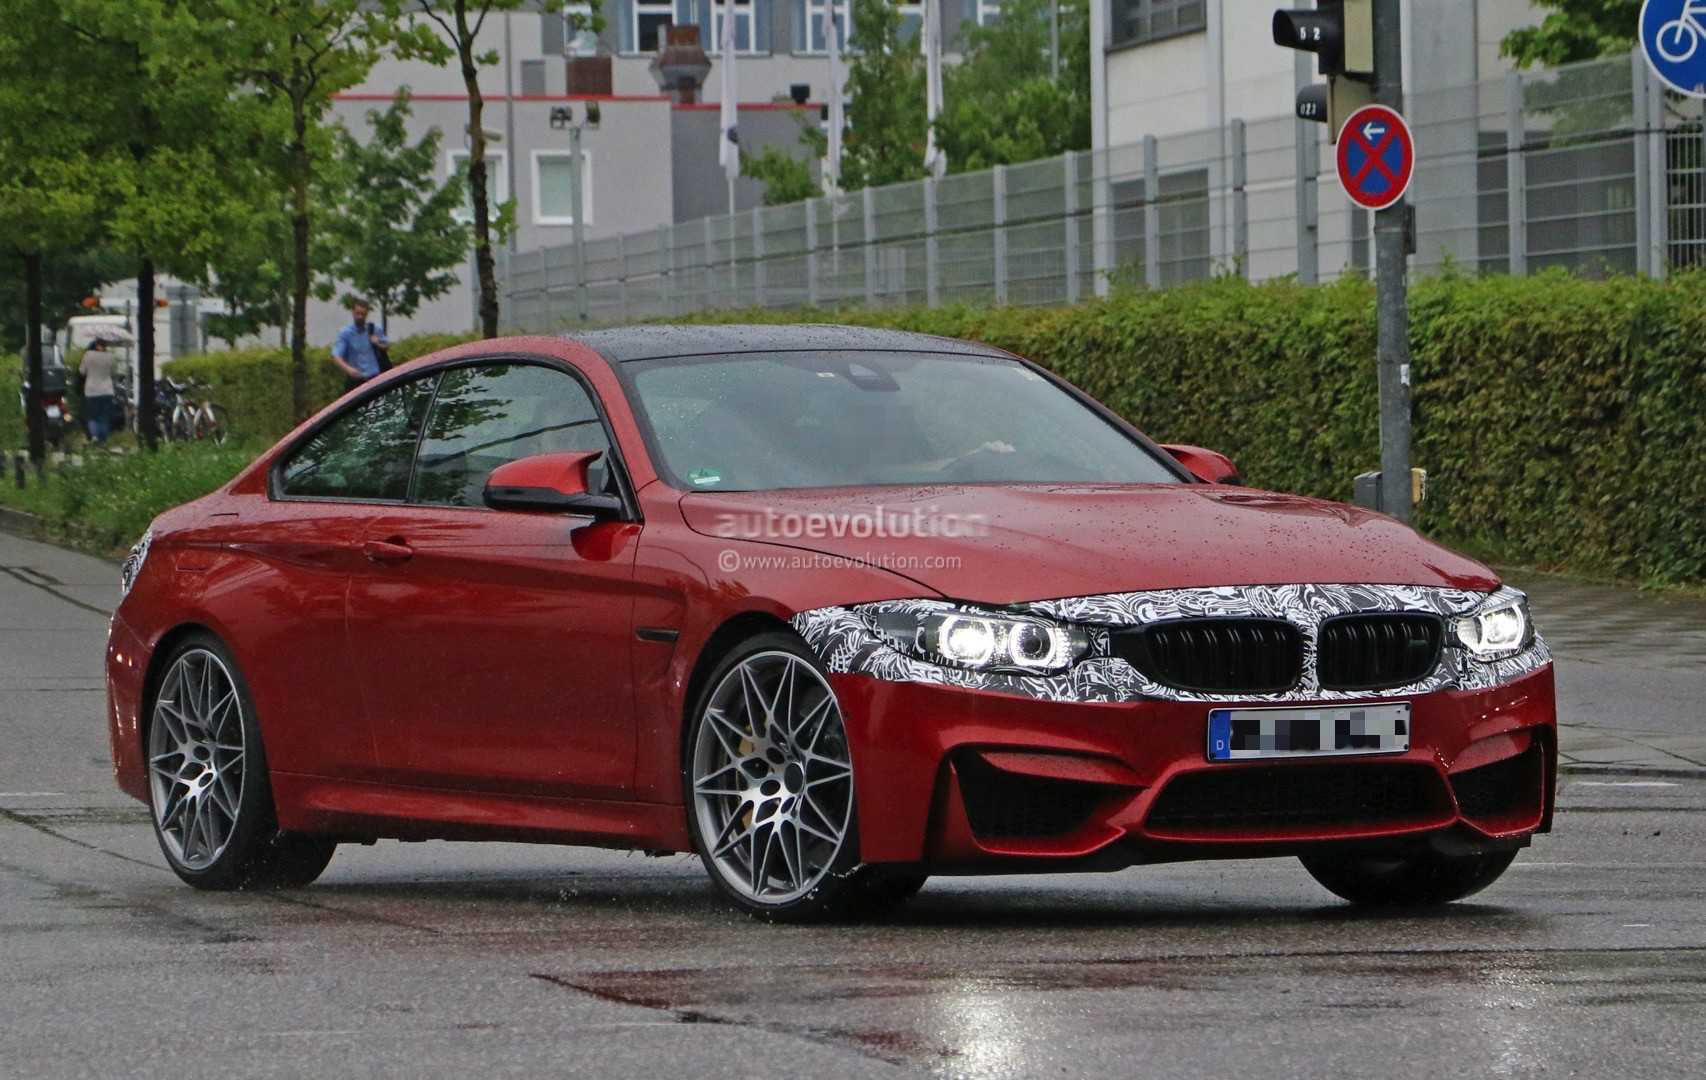 2017 bmw m4 facelift might get more power than the m3 - autoevolution